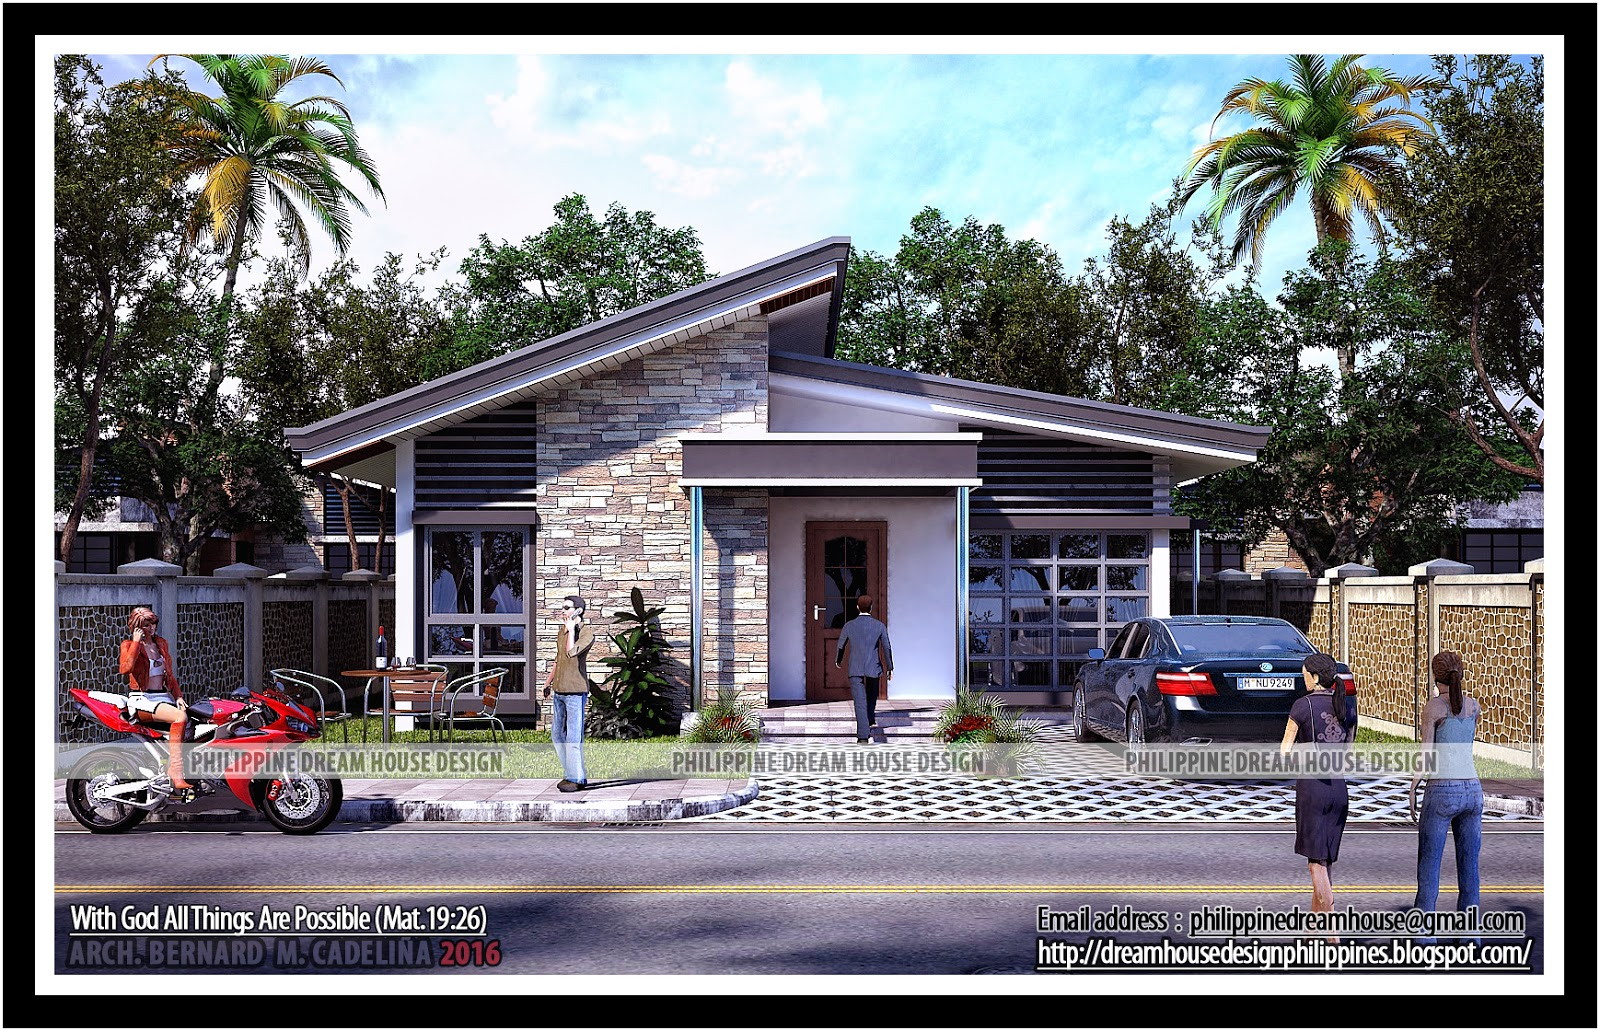 Philippine dream house design Bungalo house